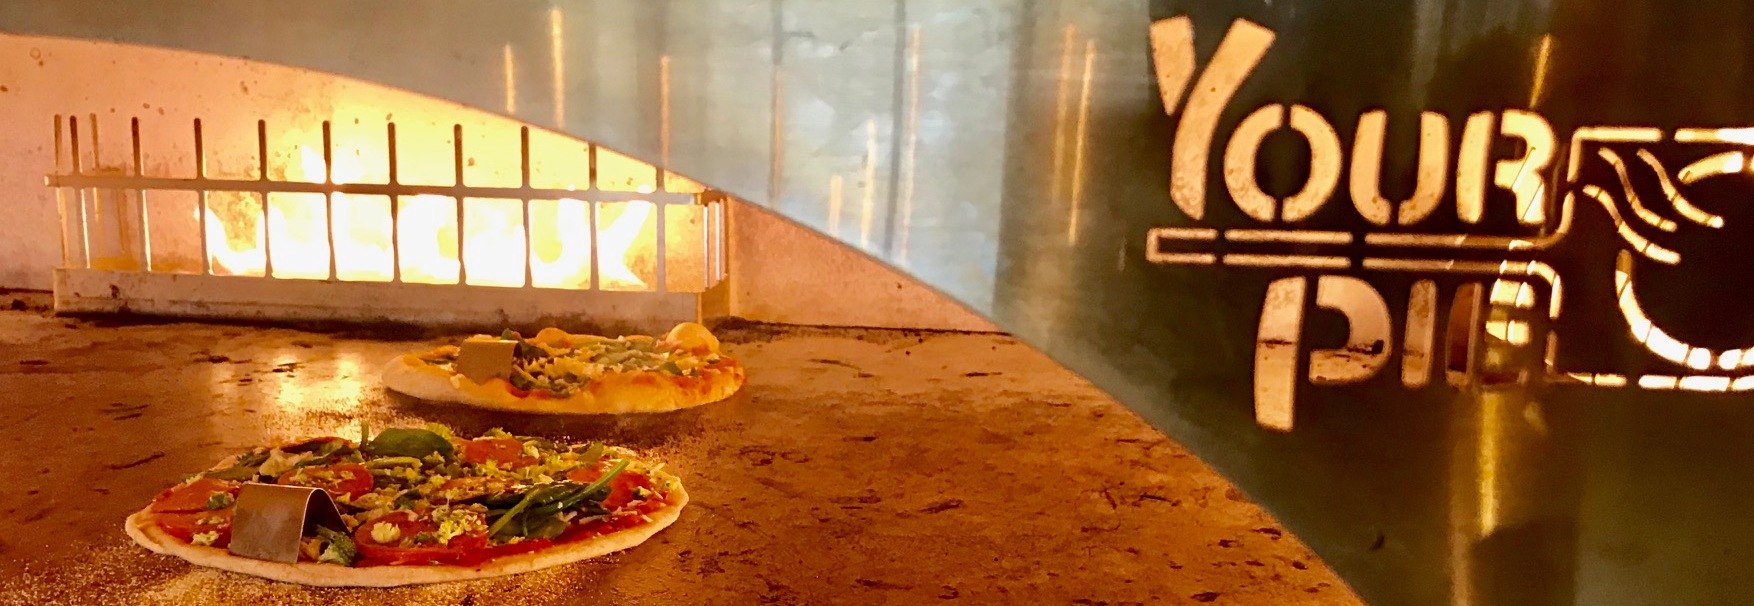 Your Pie Pizza: Individual Pizzas Are Making All of Wilmington Happy